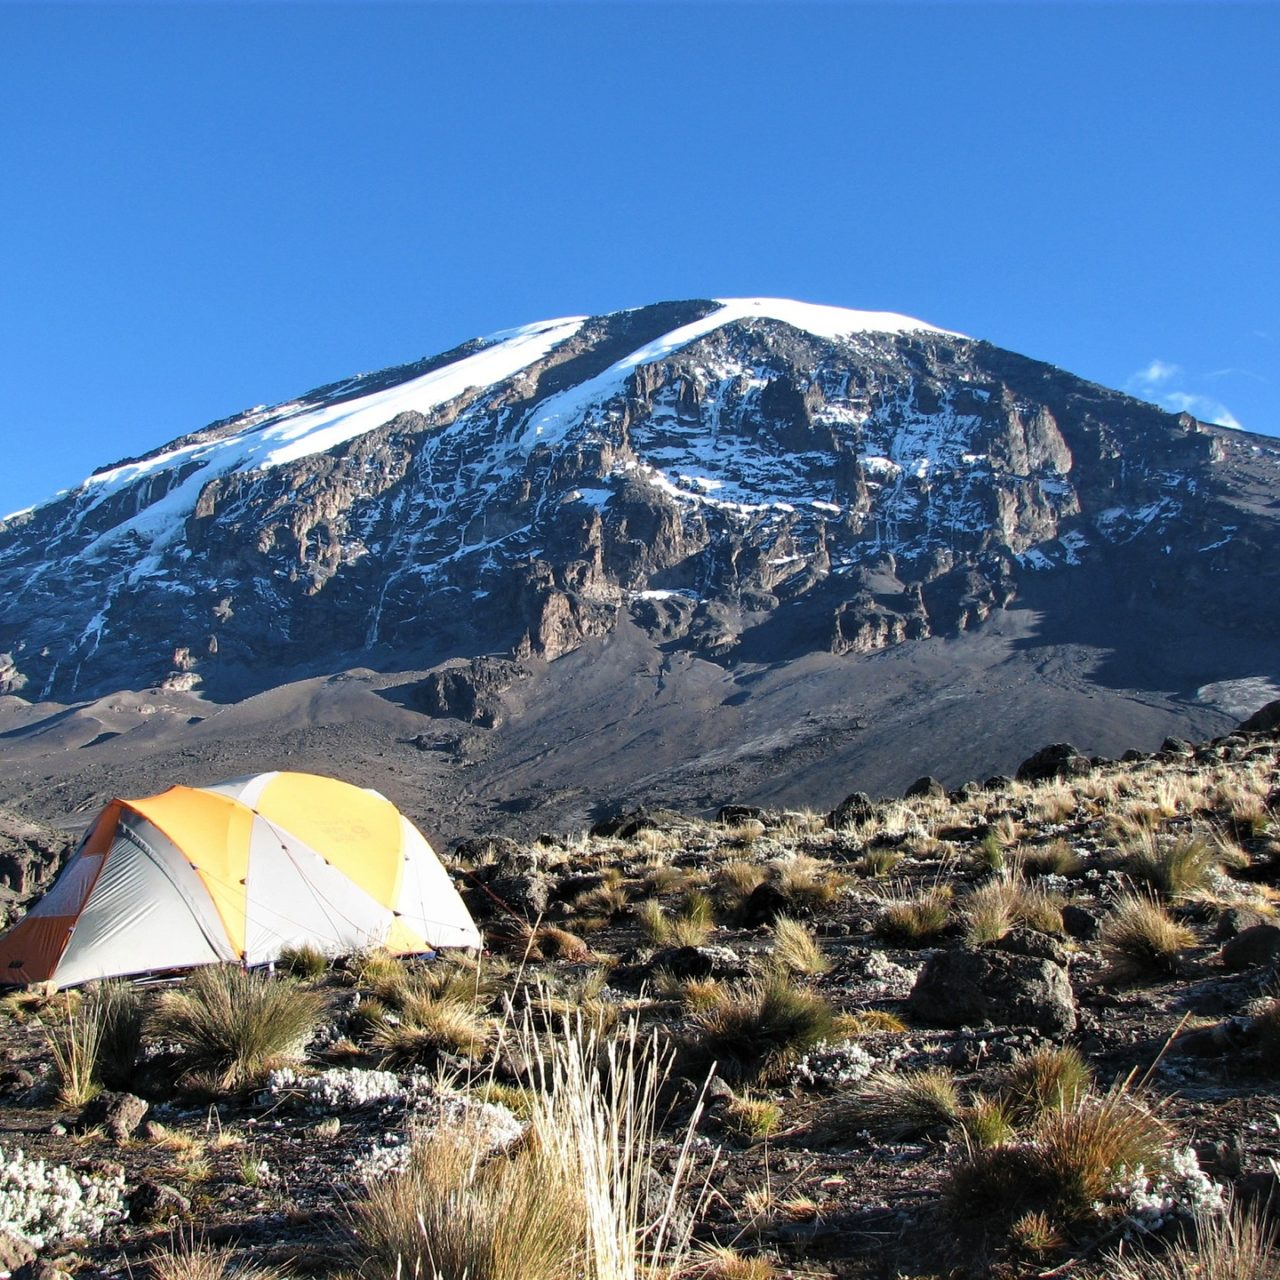 Camp site and mount Kilimanjaro